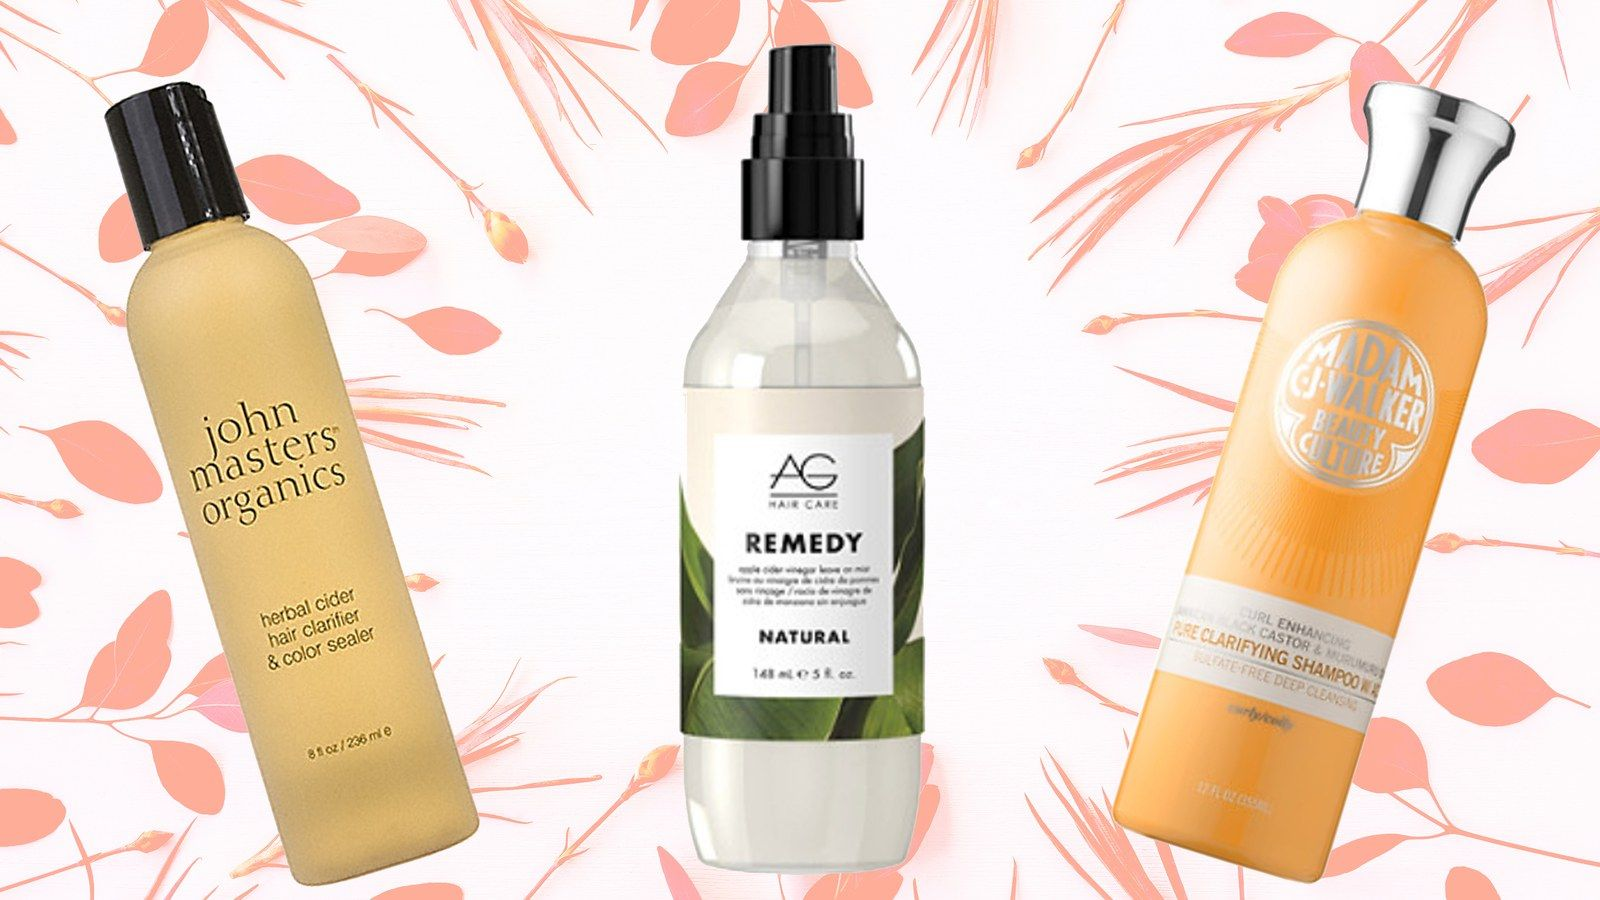 13 Products Will Bless Your Hair With the Benefits of